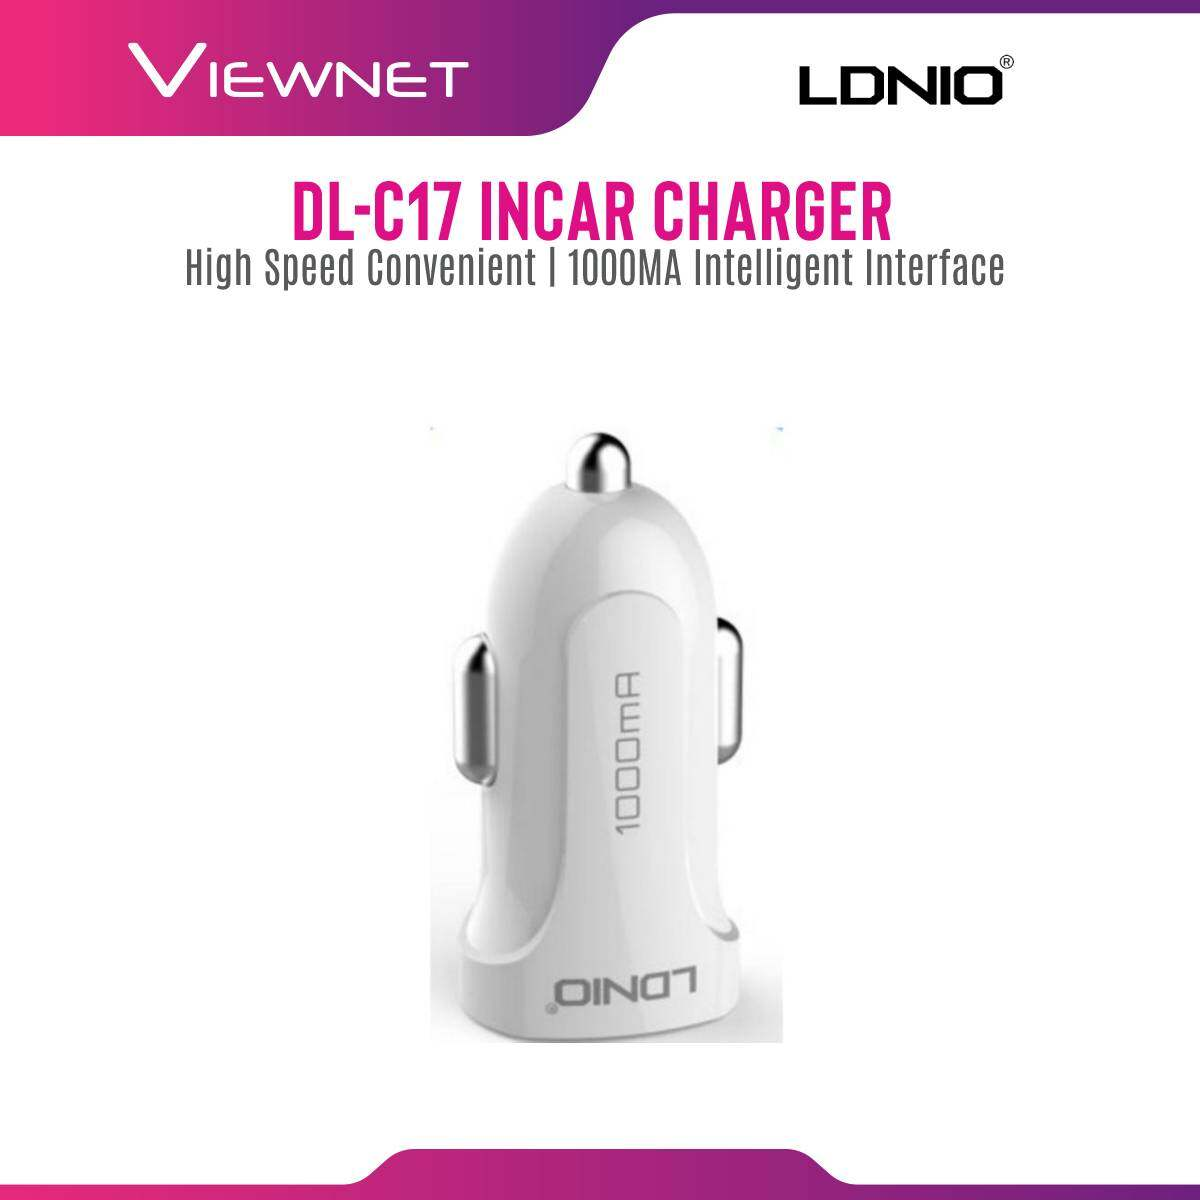 LDNIO In-Car 1-USB 1A Charger With Micro USB Cable (DL-C17)